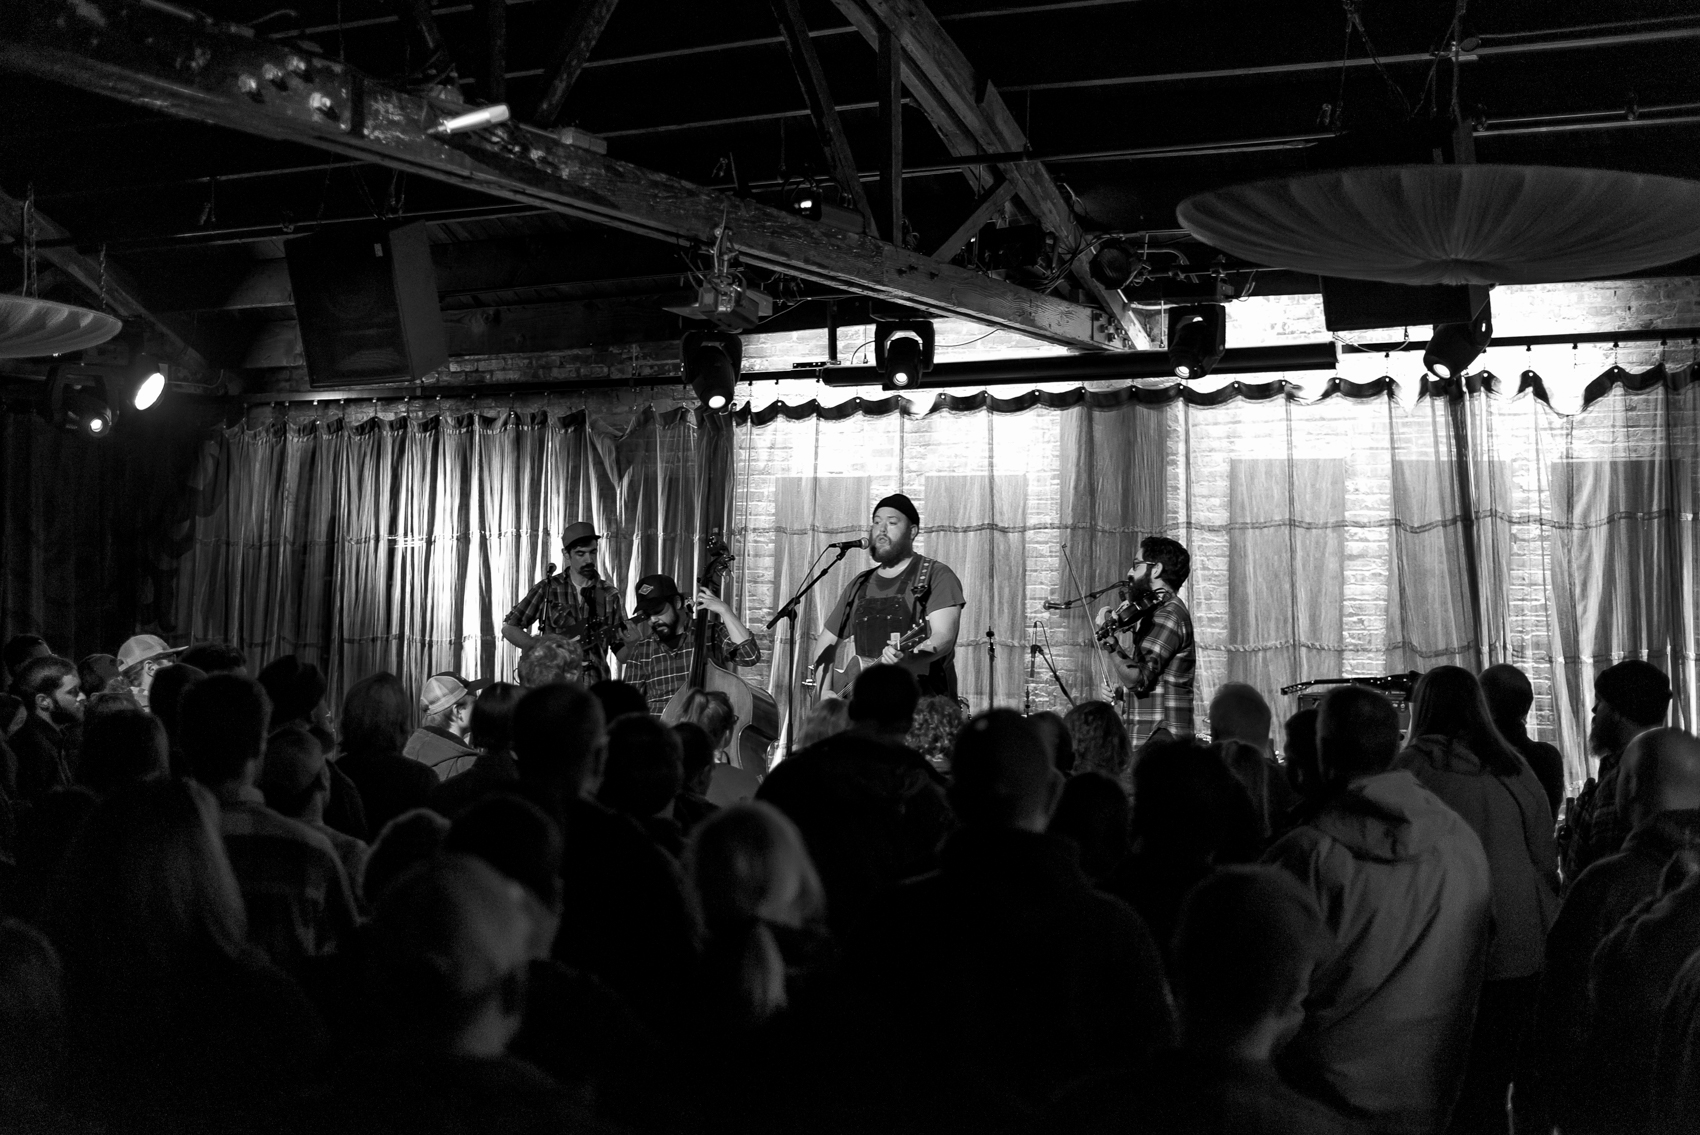 Al Scorch band onstage at SPACE Evanston Feb 11 2018 with Tyler Childers Photo by Victoria Sanders